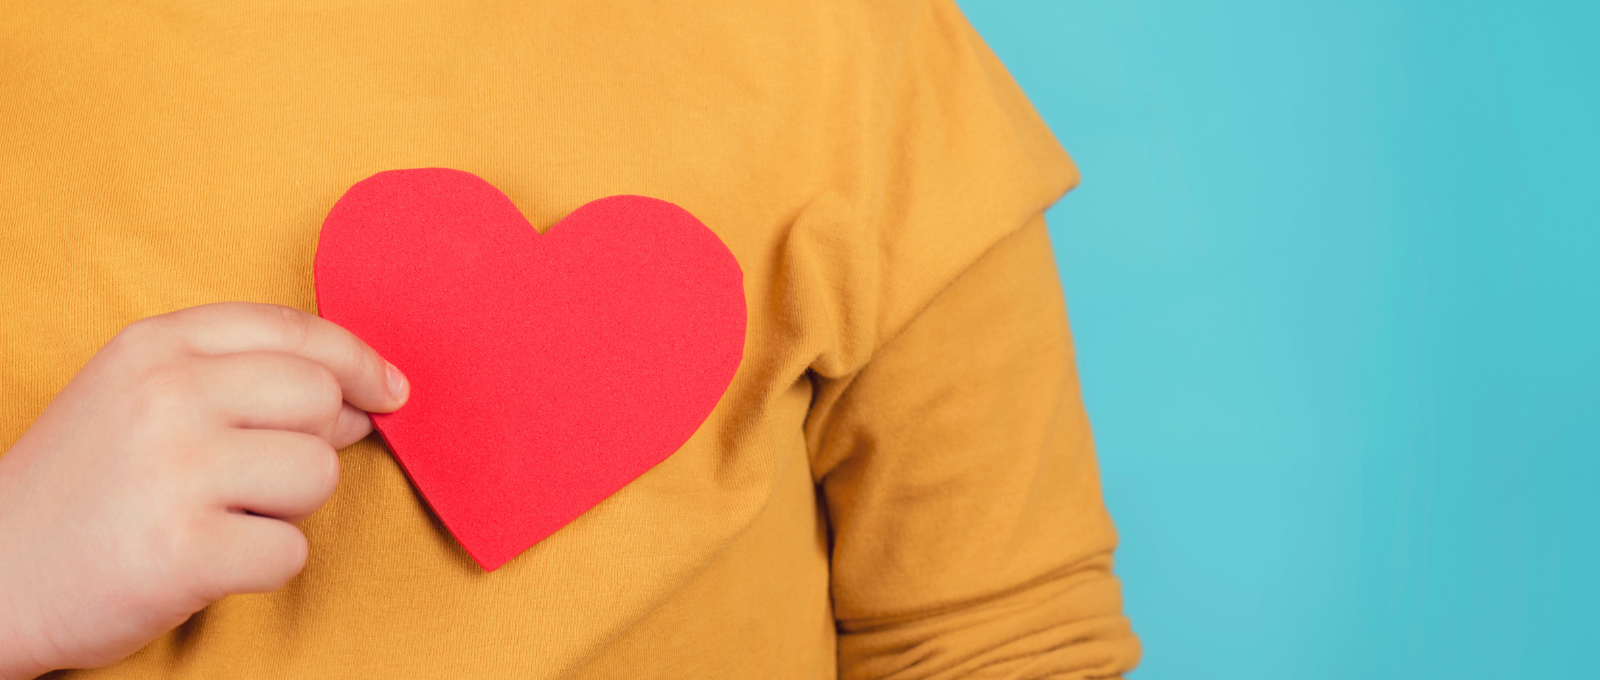 Person holding a heart over their chest to symbolize empathy